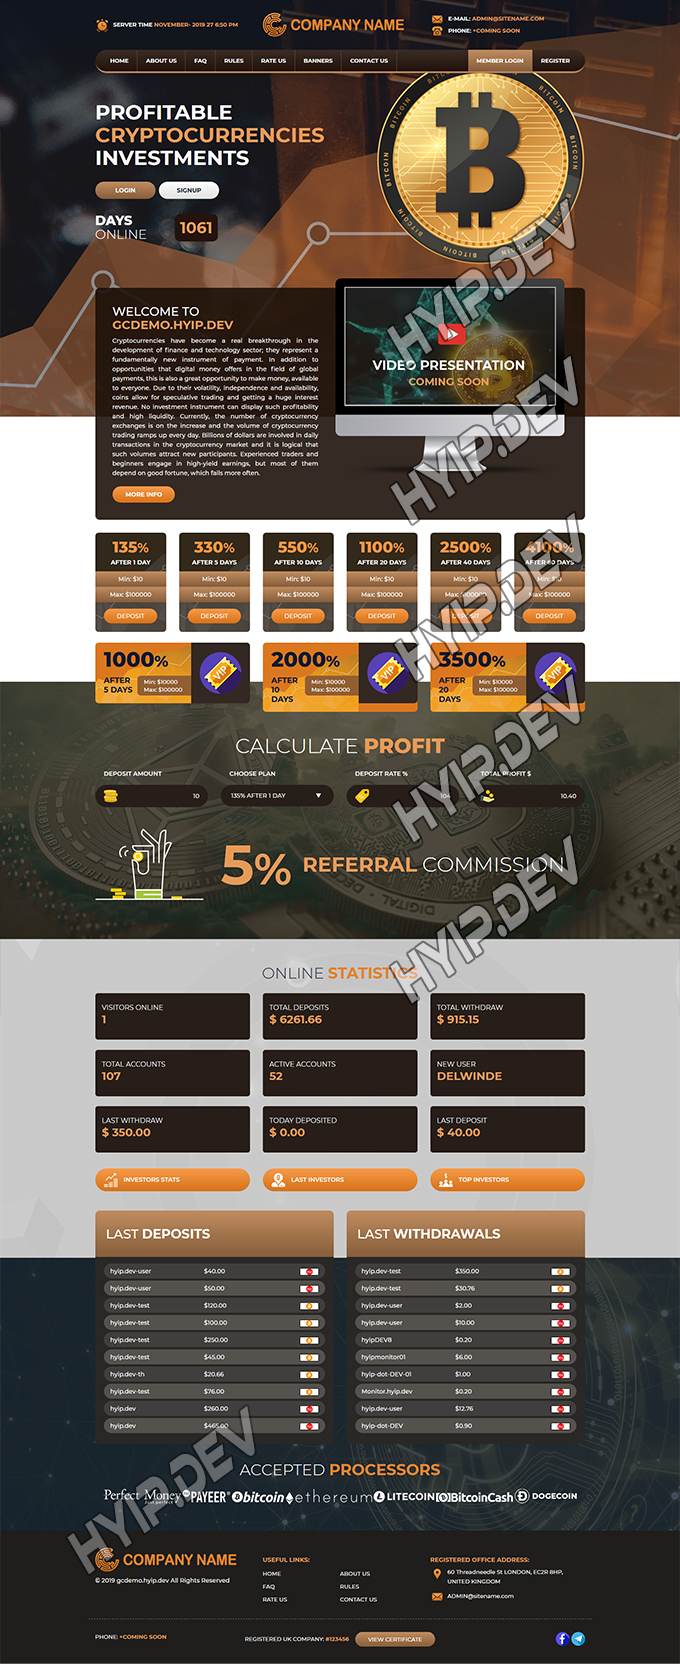 goldcoders hyip template no. 098, home page screenshot